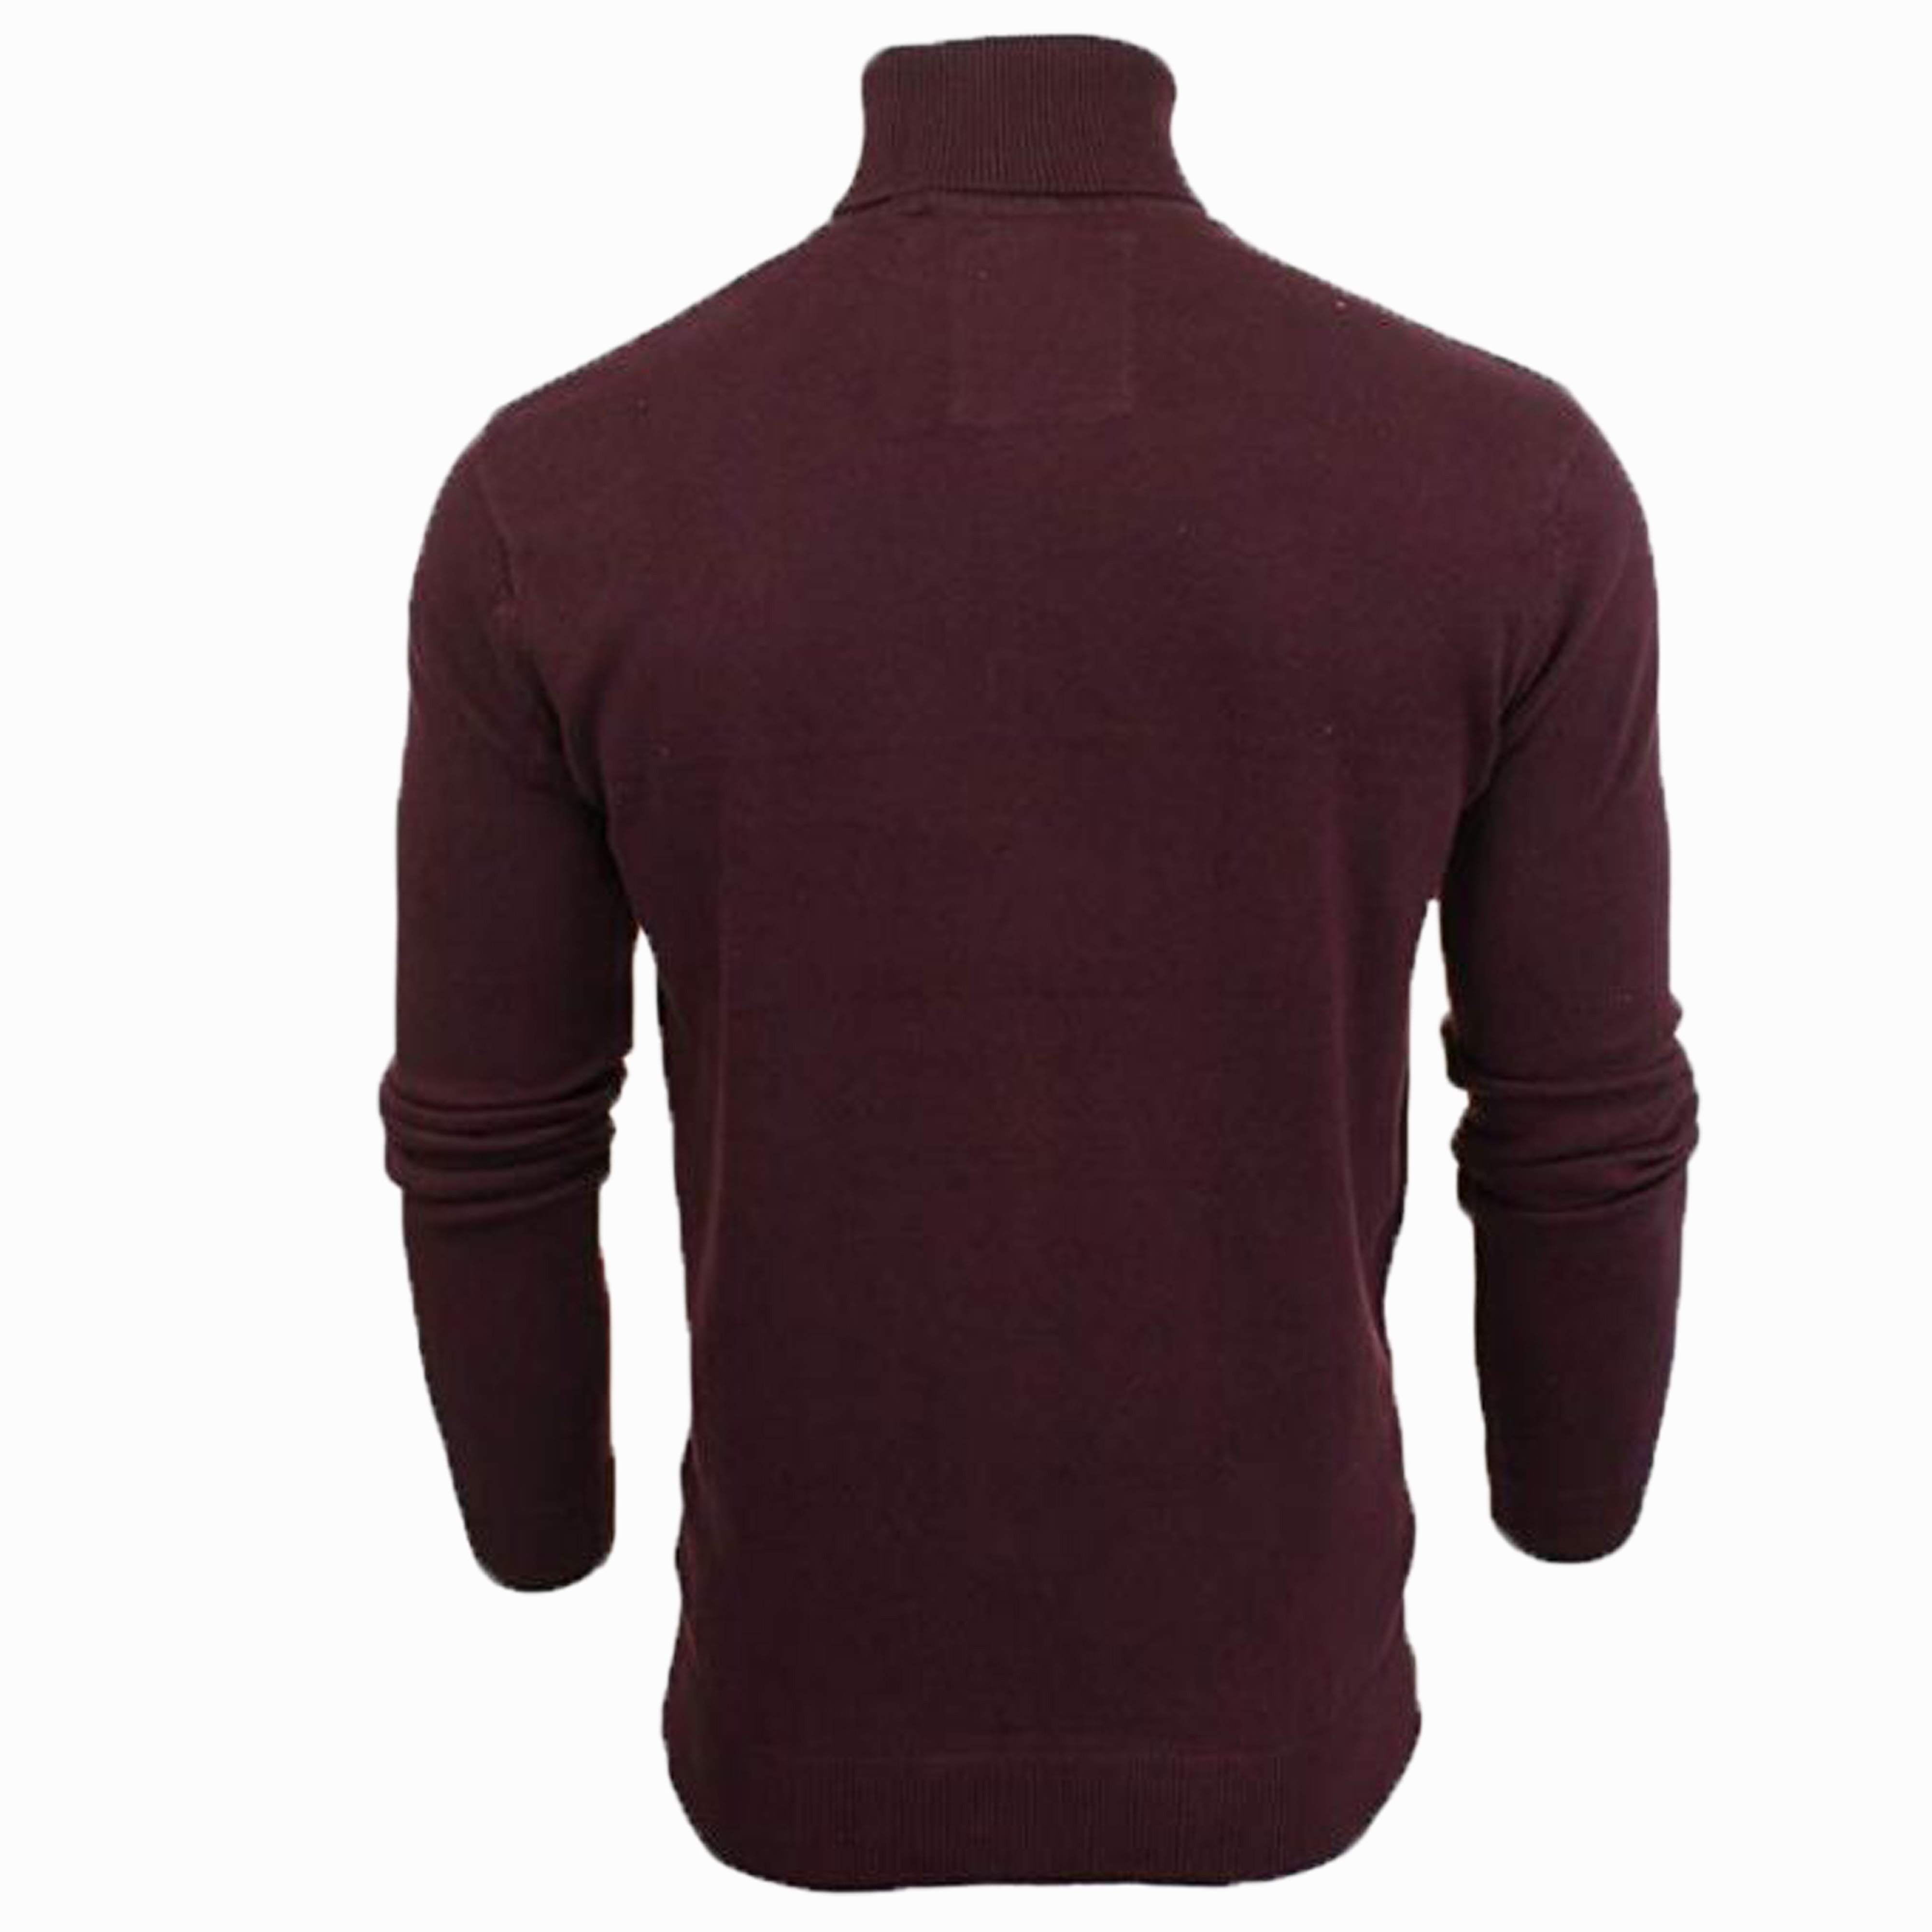 Mens-Brave-Soul-HUME-Roll-Neck-Polo-Light-Cotton-Knitwear-Jumper-Sweater-Winter thumbnail 24